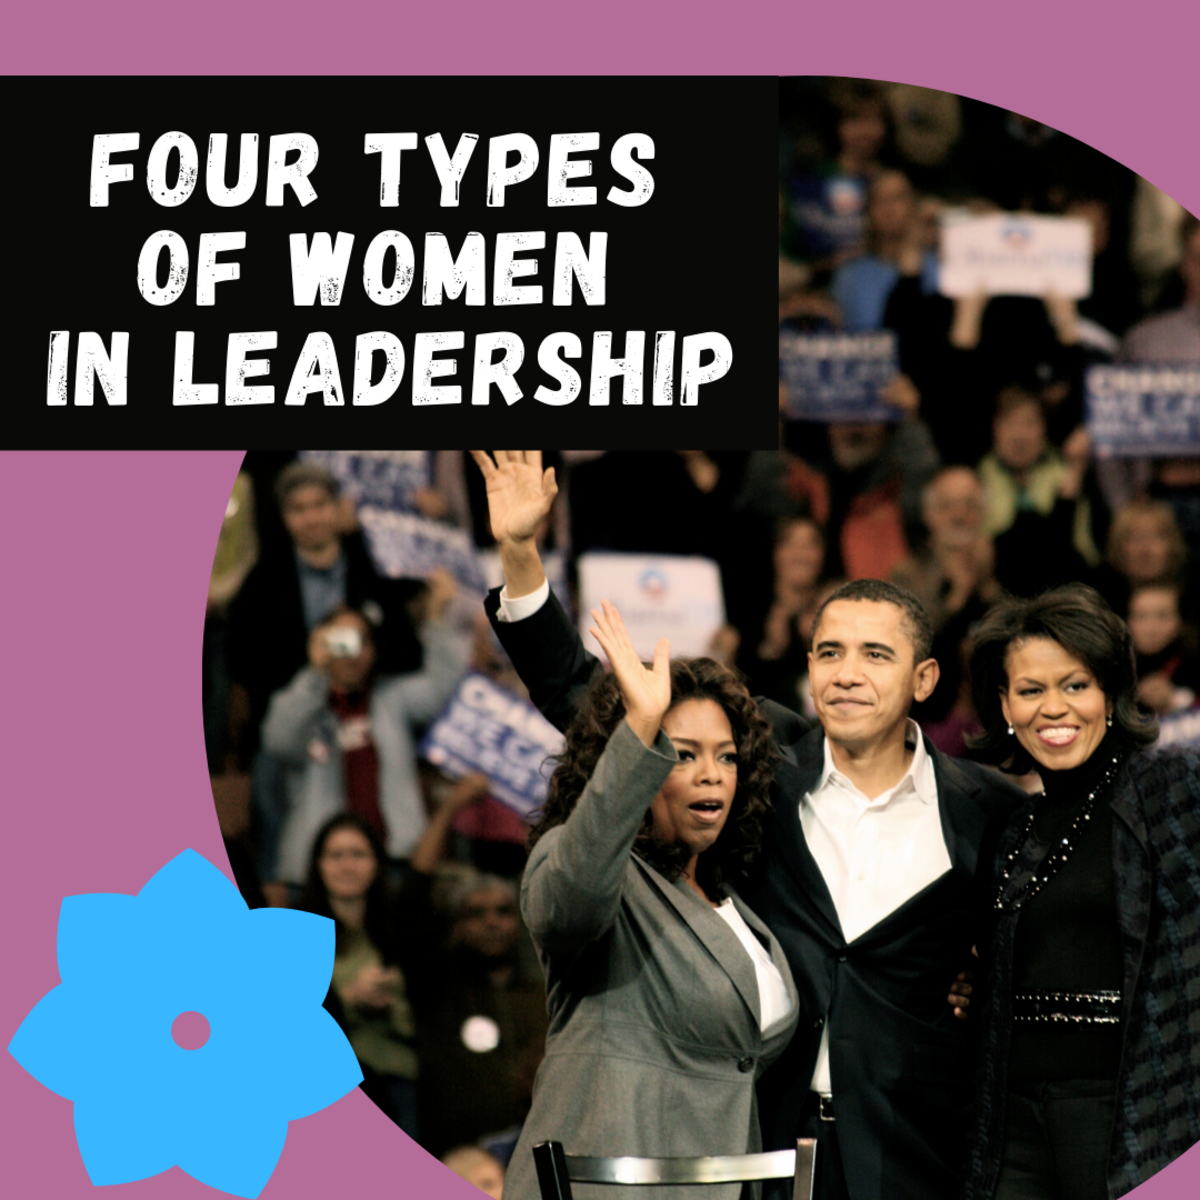 The Four Types of Women in Leadership